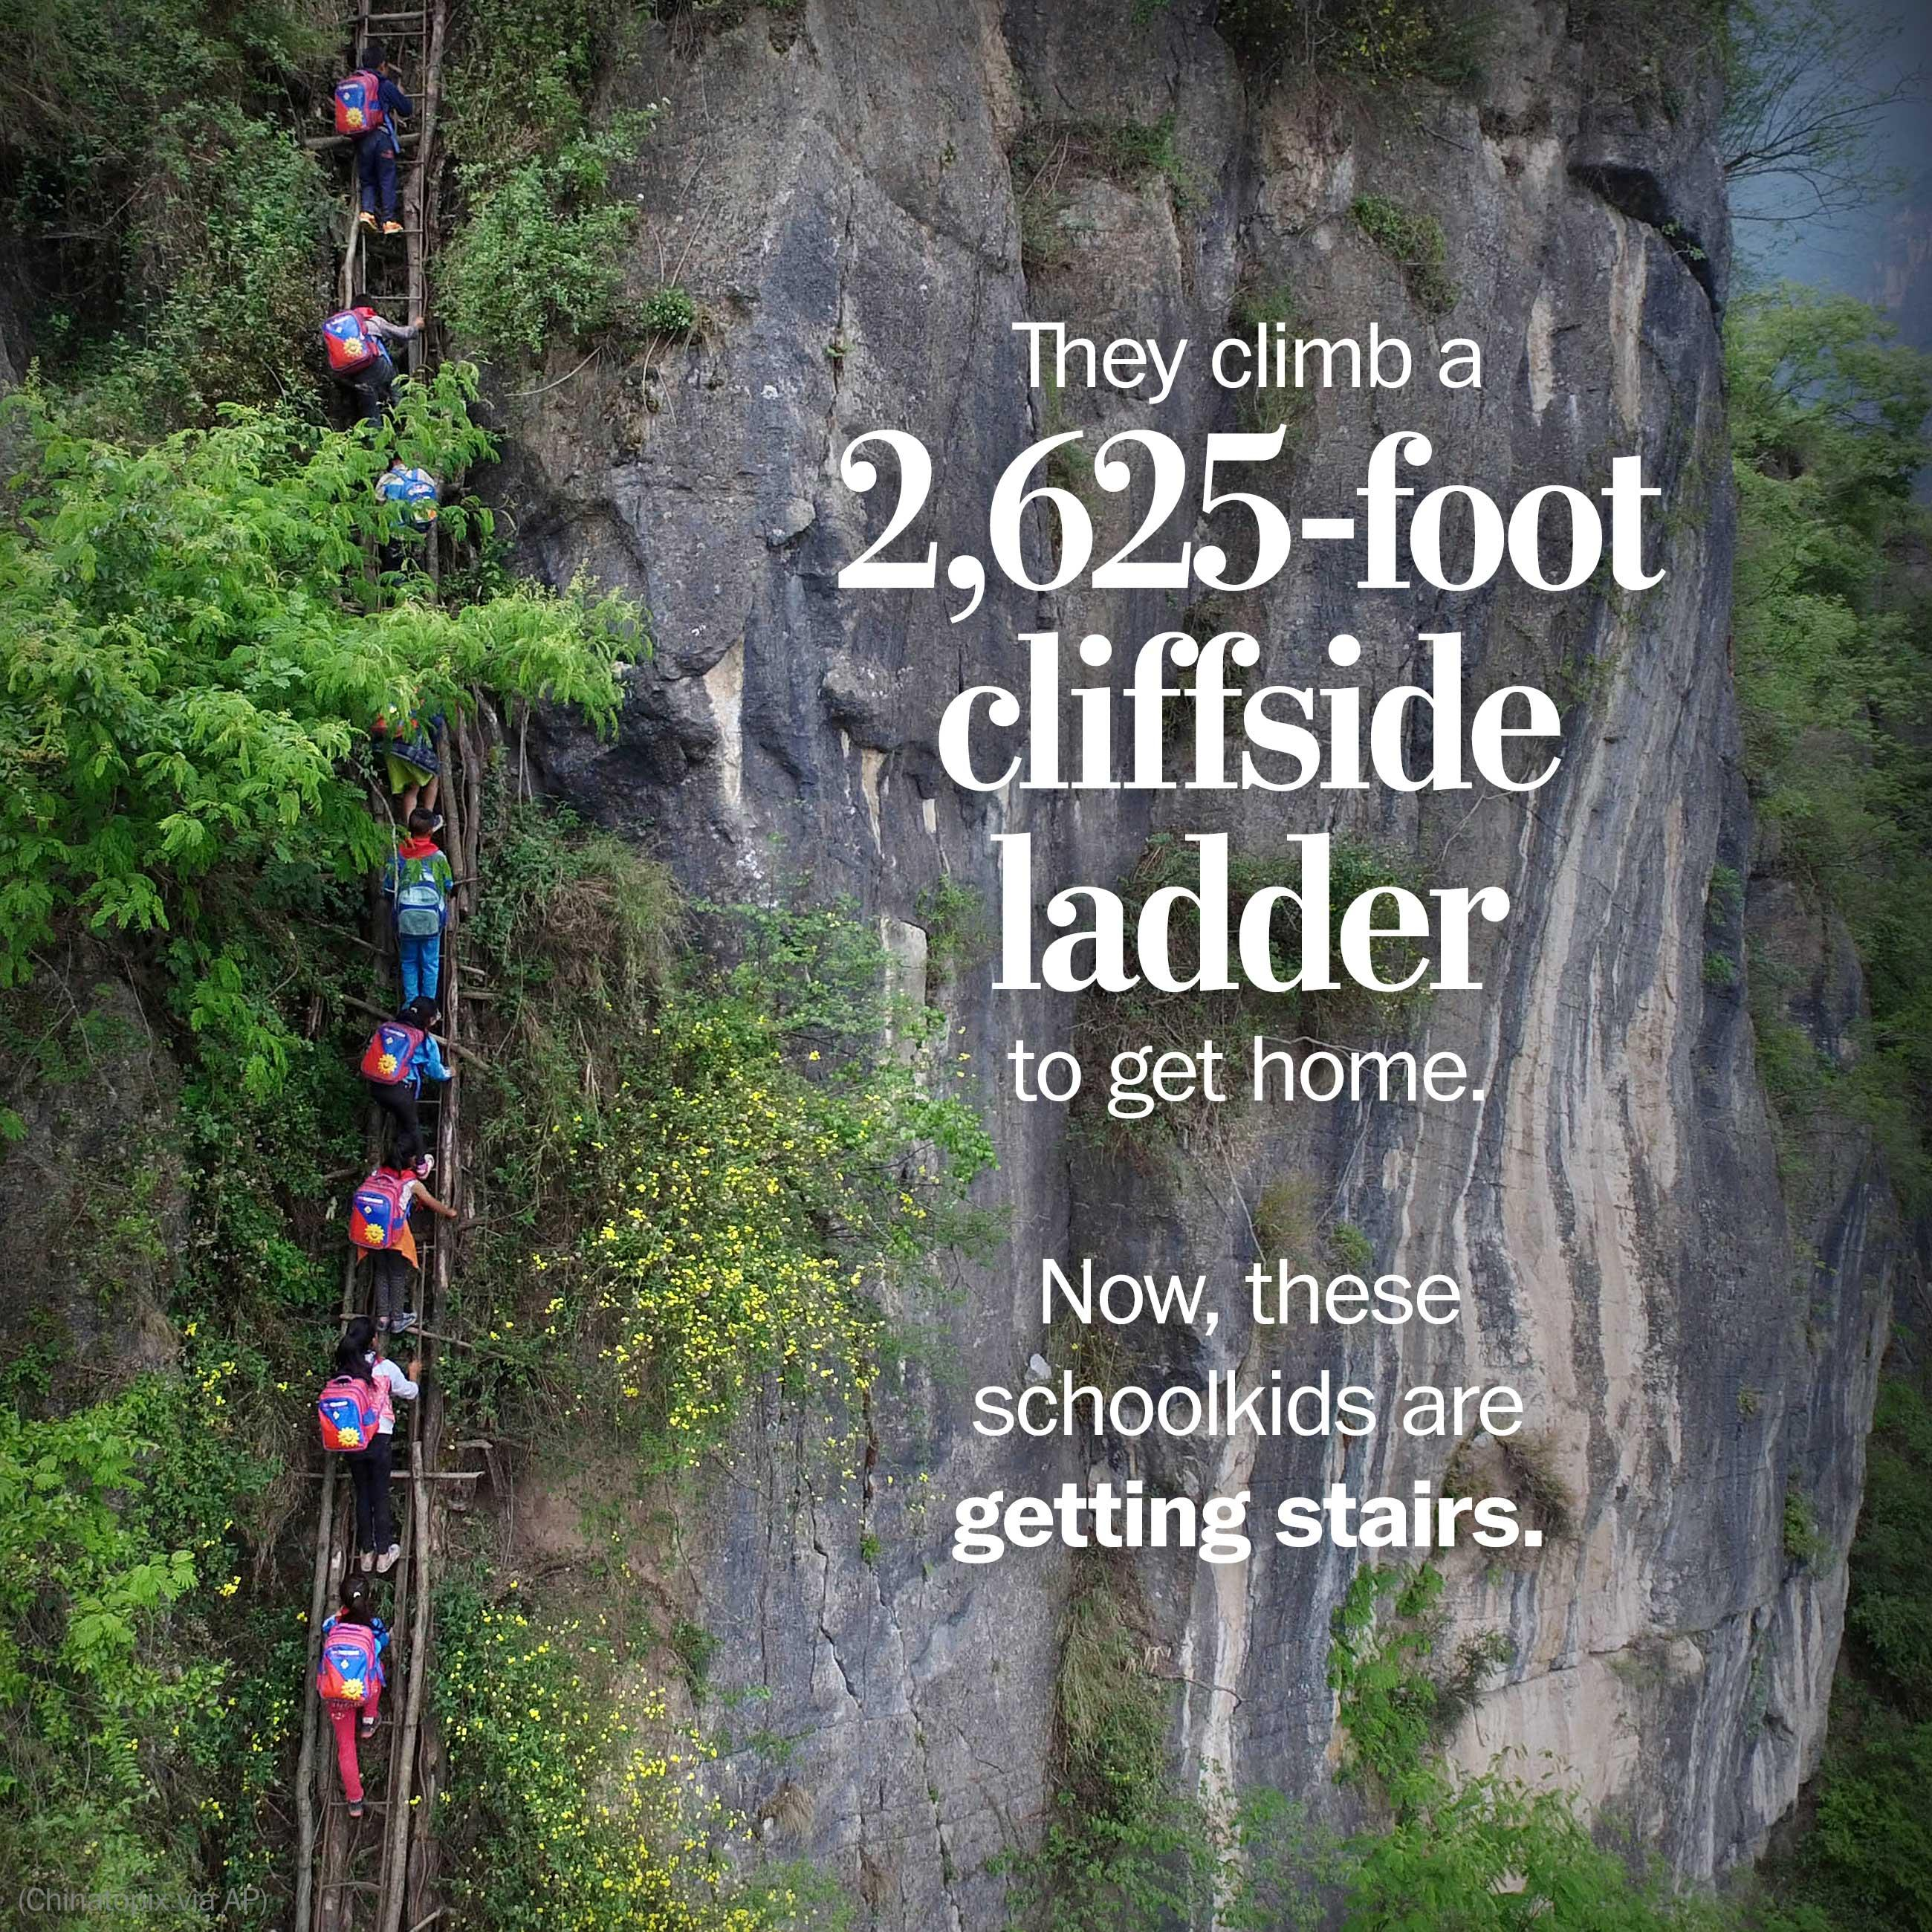 Chinese schoolkids climb a 2,625-foot cliffside ladder to get home. Now, they'll have stairs.